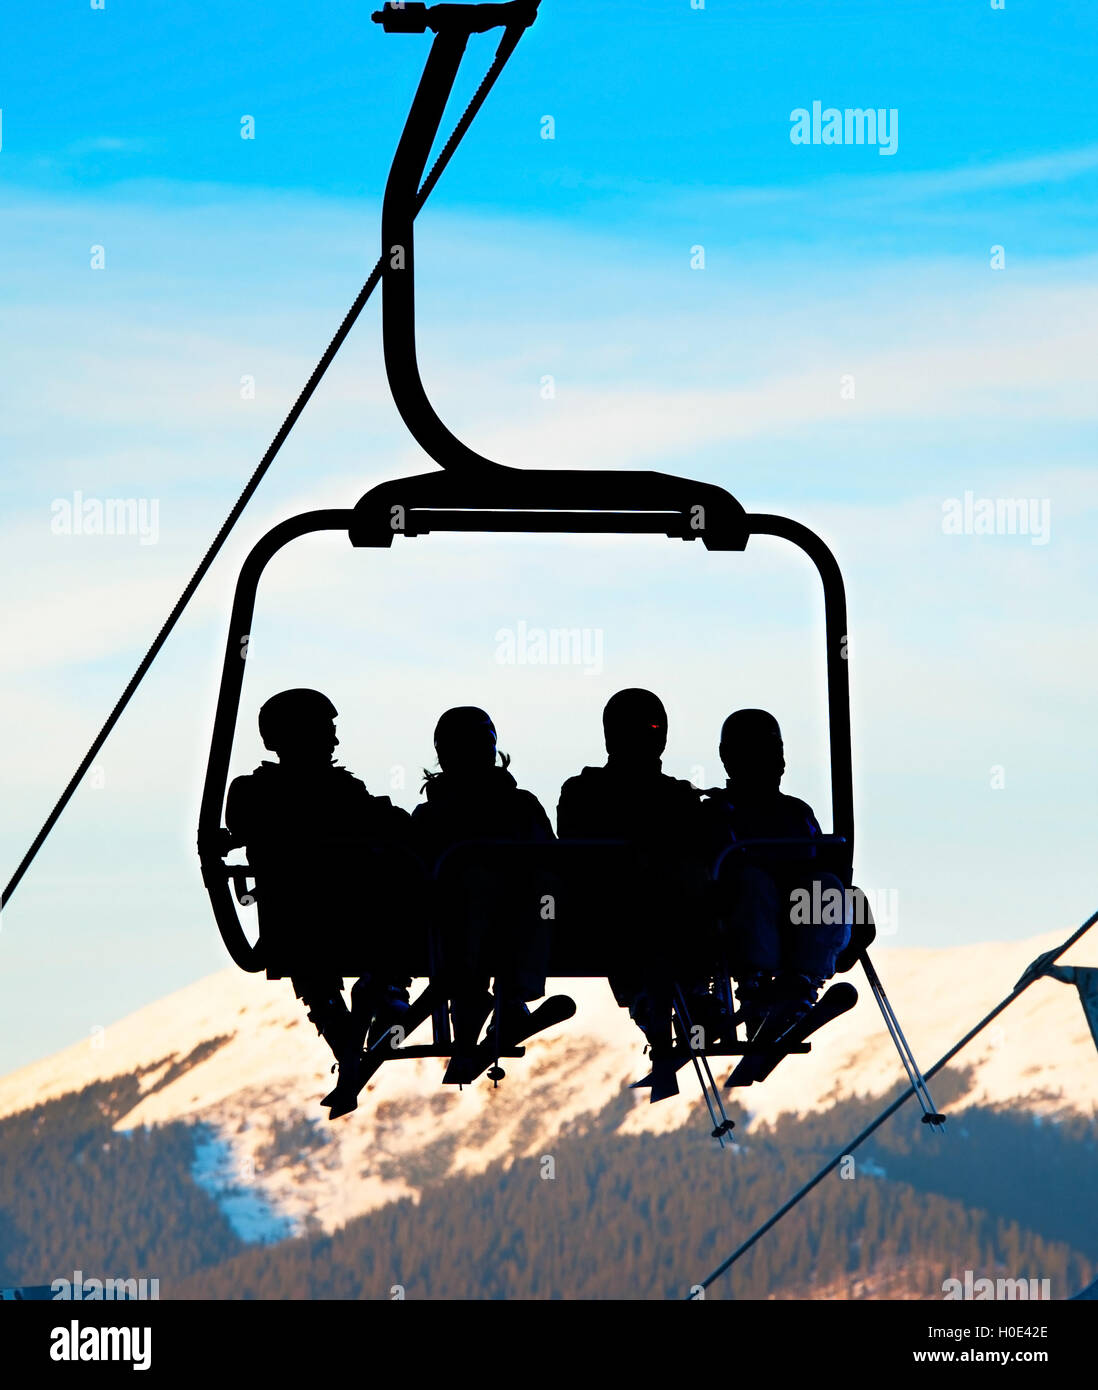 Silhouette of a group of people on a ski lift at ski resort. - Stock Image